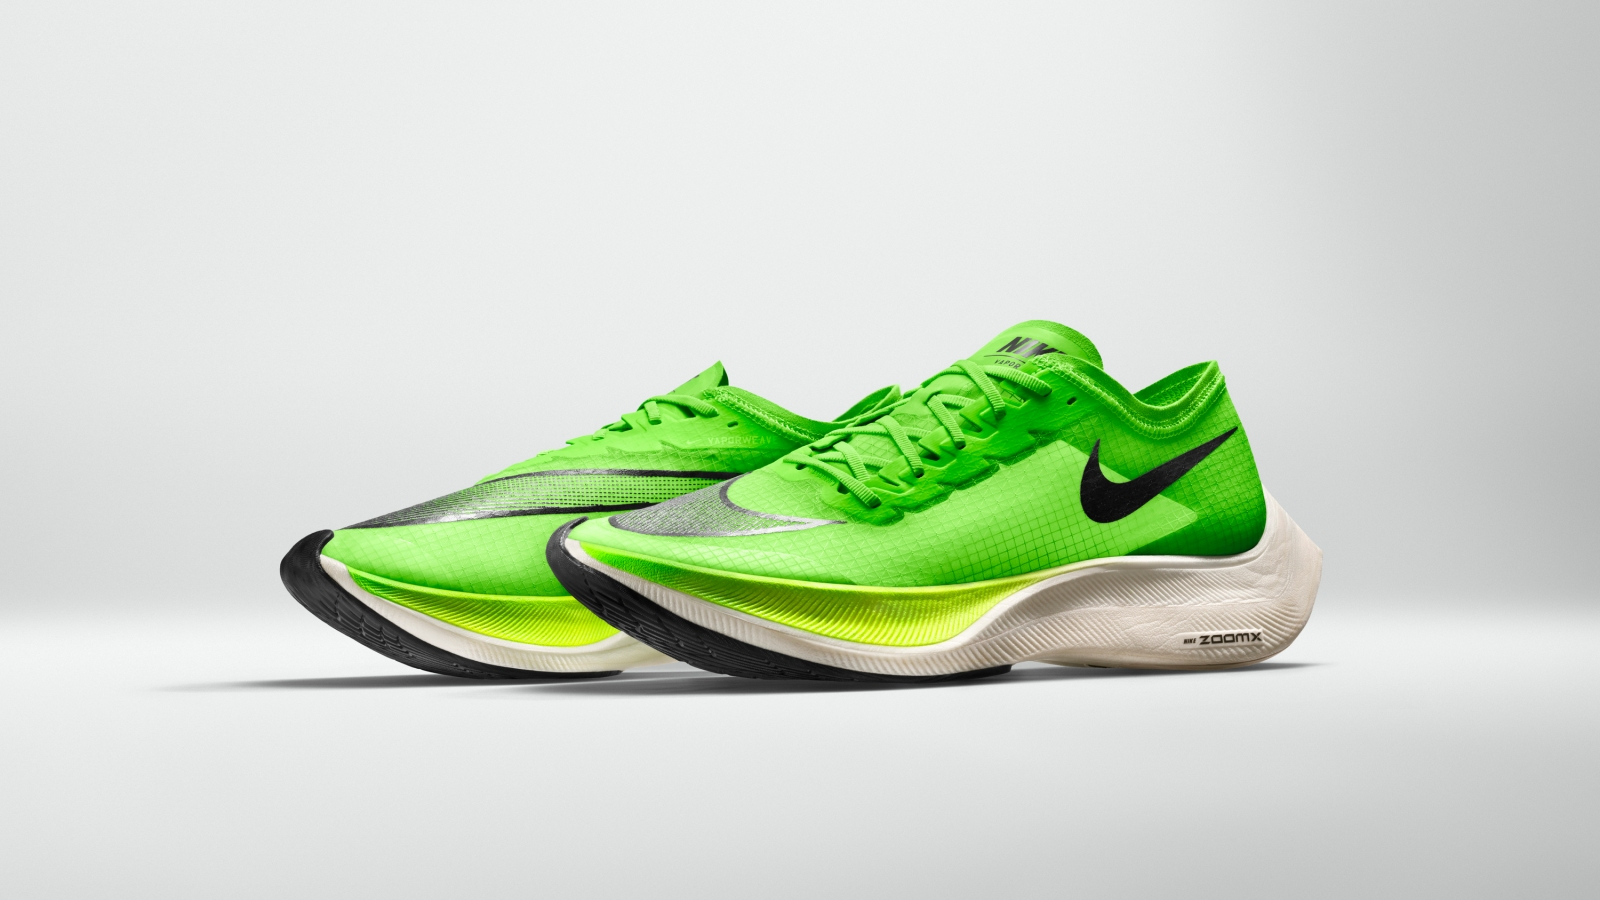 5f9b0d358f14b Nike Unveils the New ZoomX Vaporfly NEXT% Running Shoes